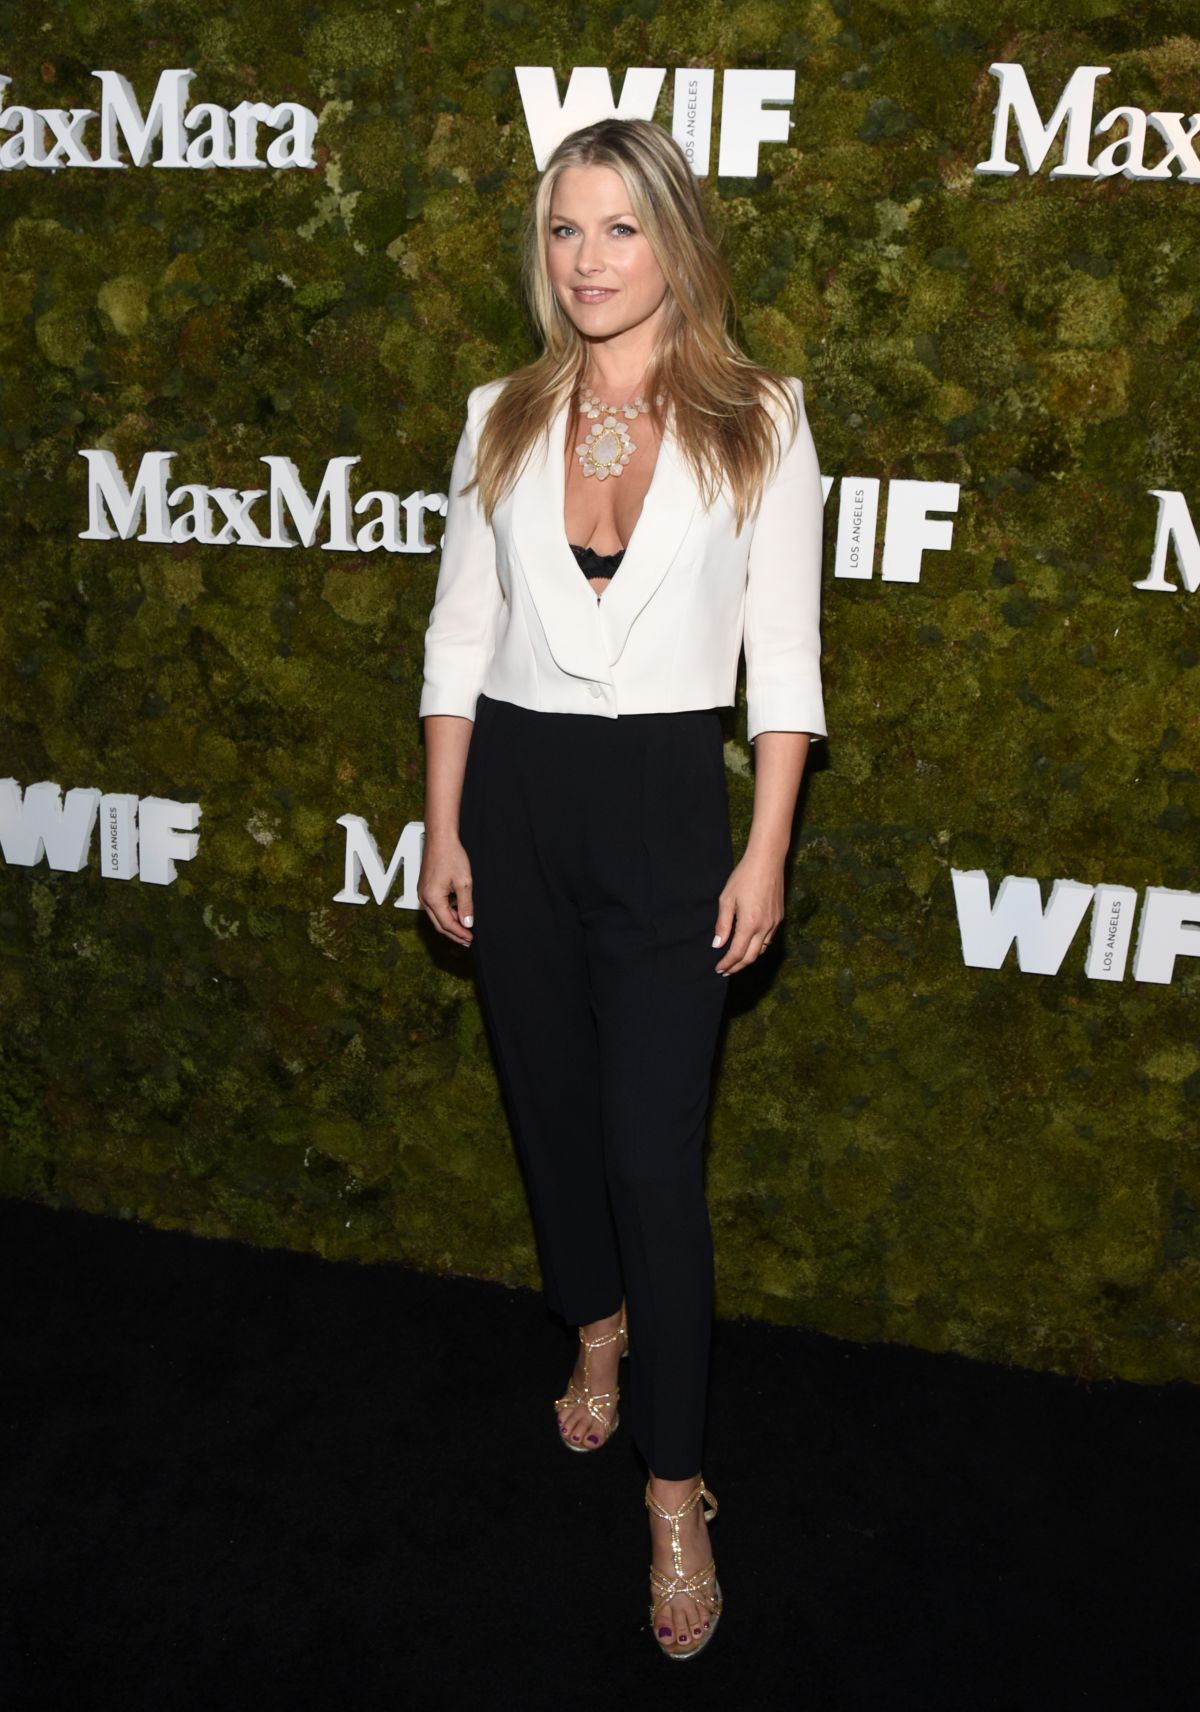 ali-larter-attends-the-max-mara-women-in-film-face-of-the-future-award-event-in-west-hollywood_4